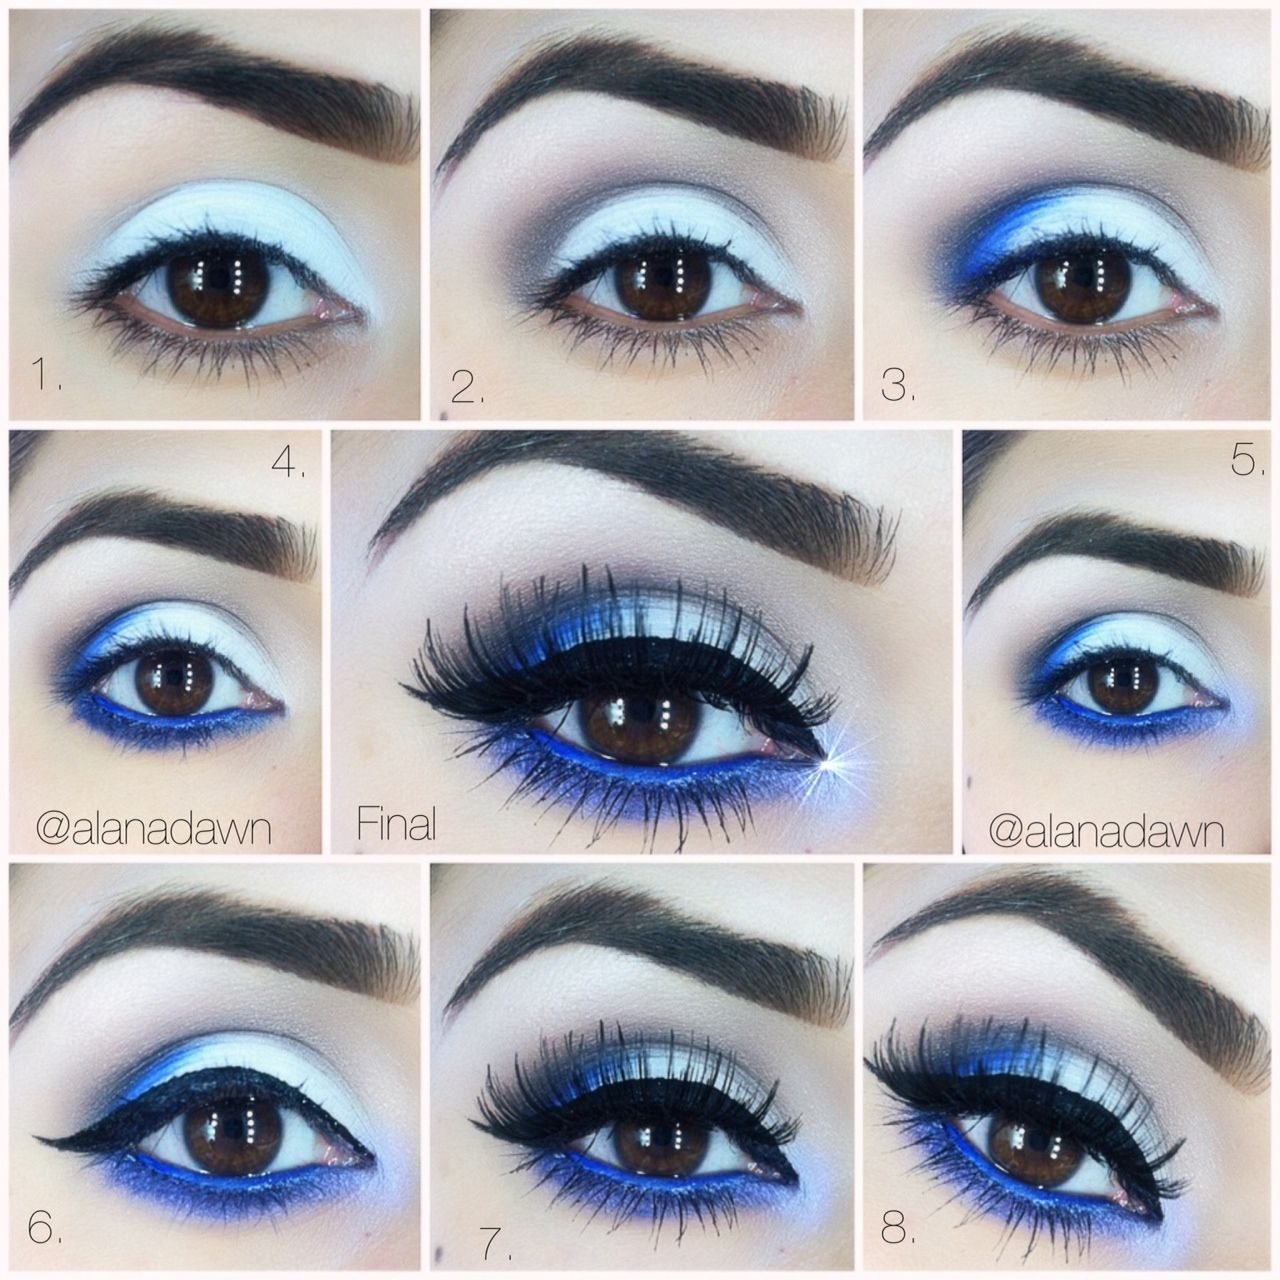 Today We Are Going To Show You How To Make An Amazing Ocean Blue Makeup